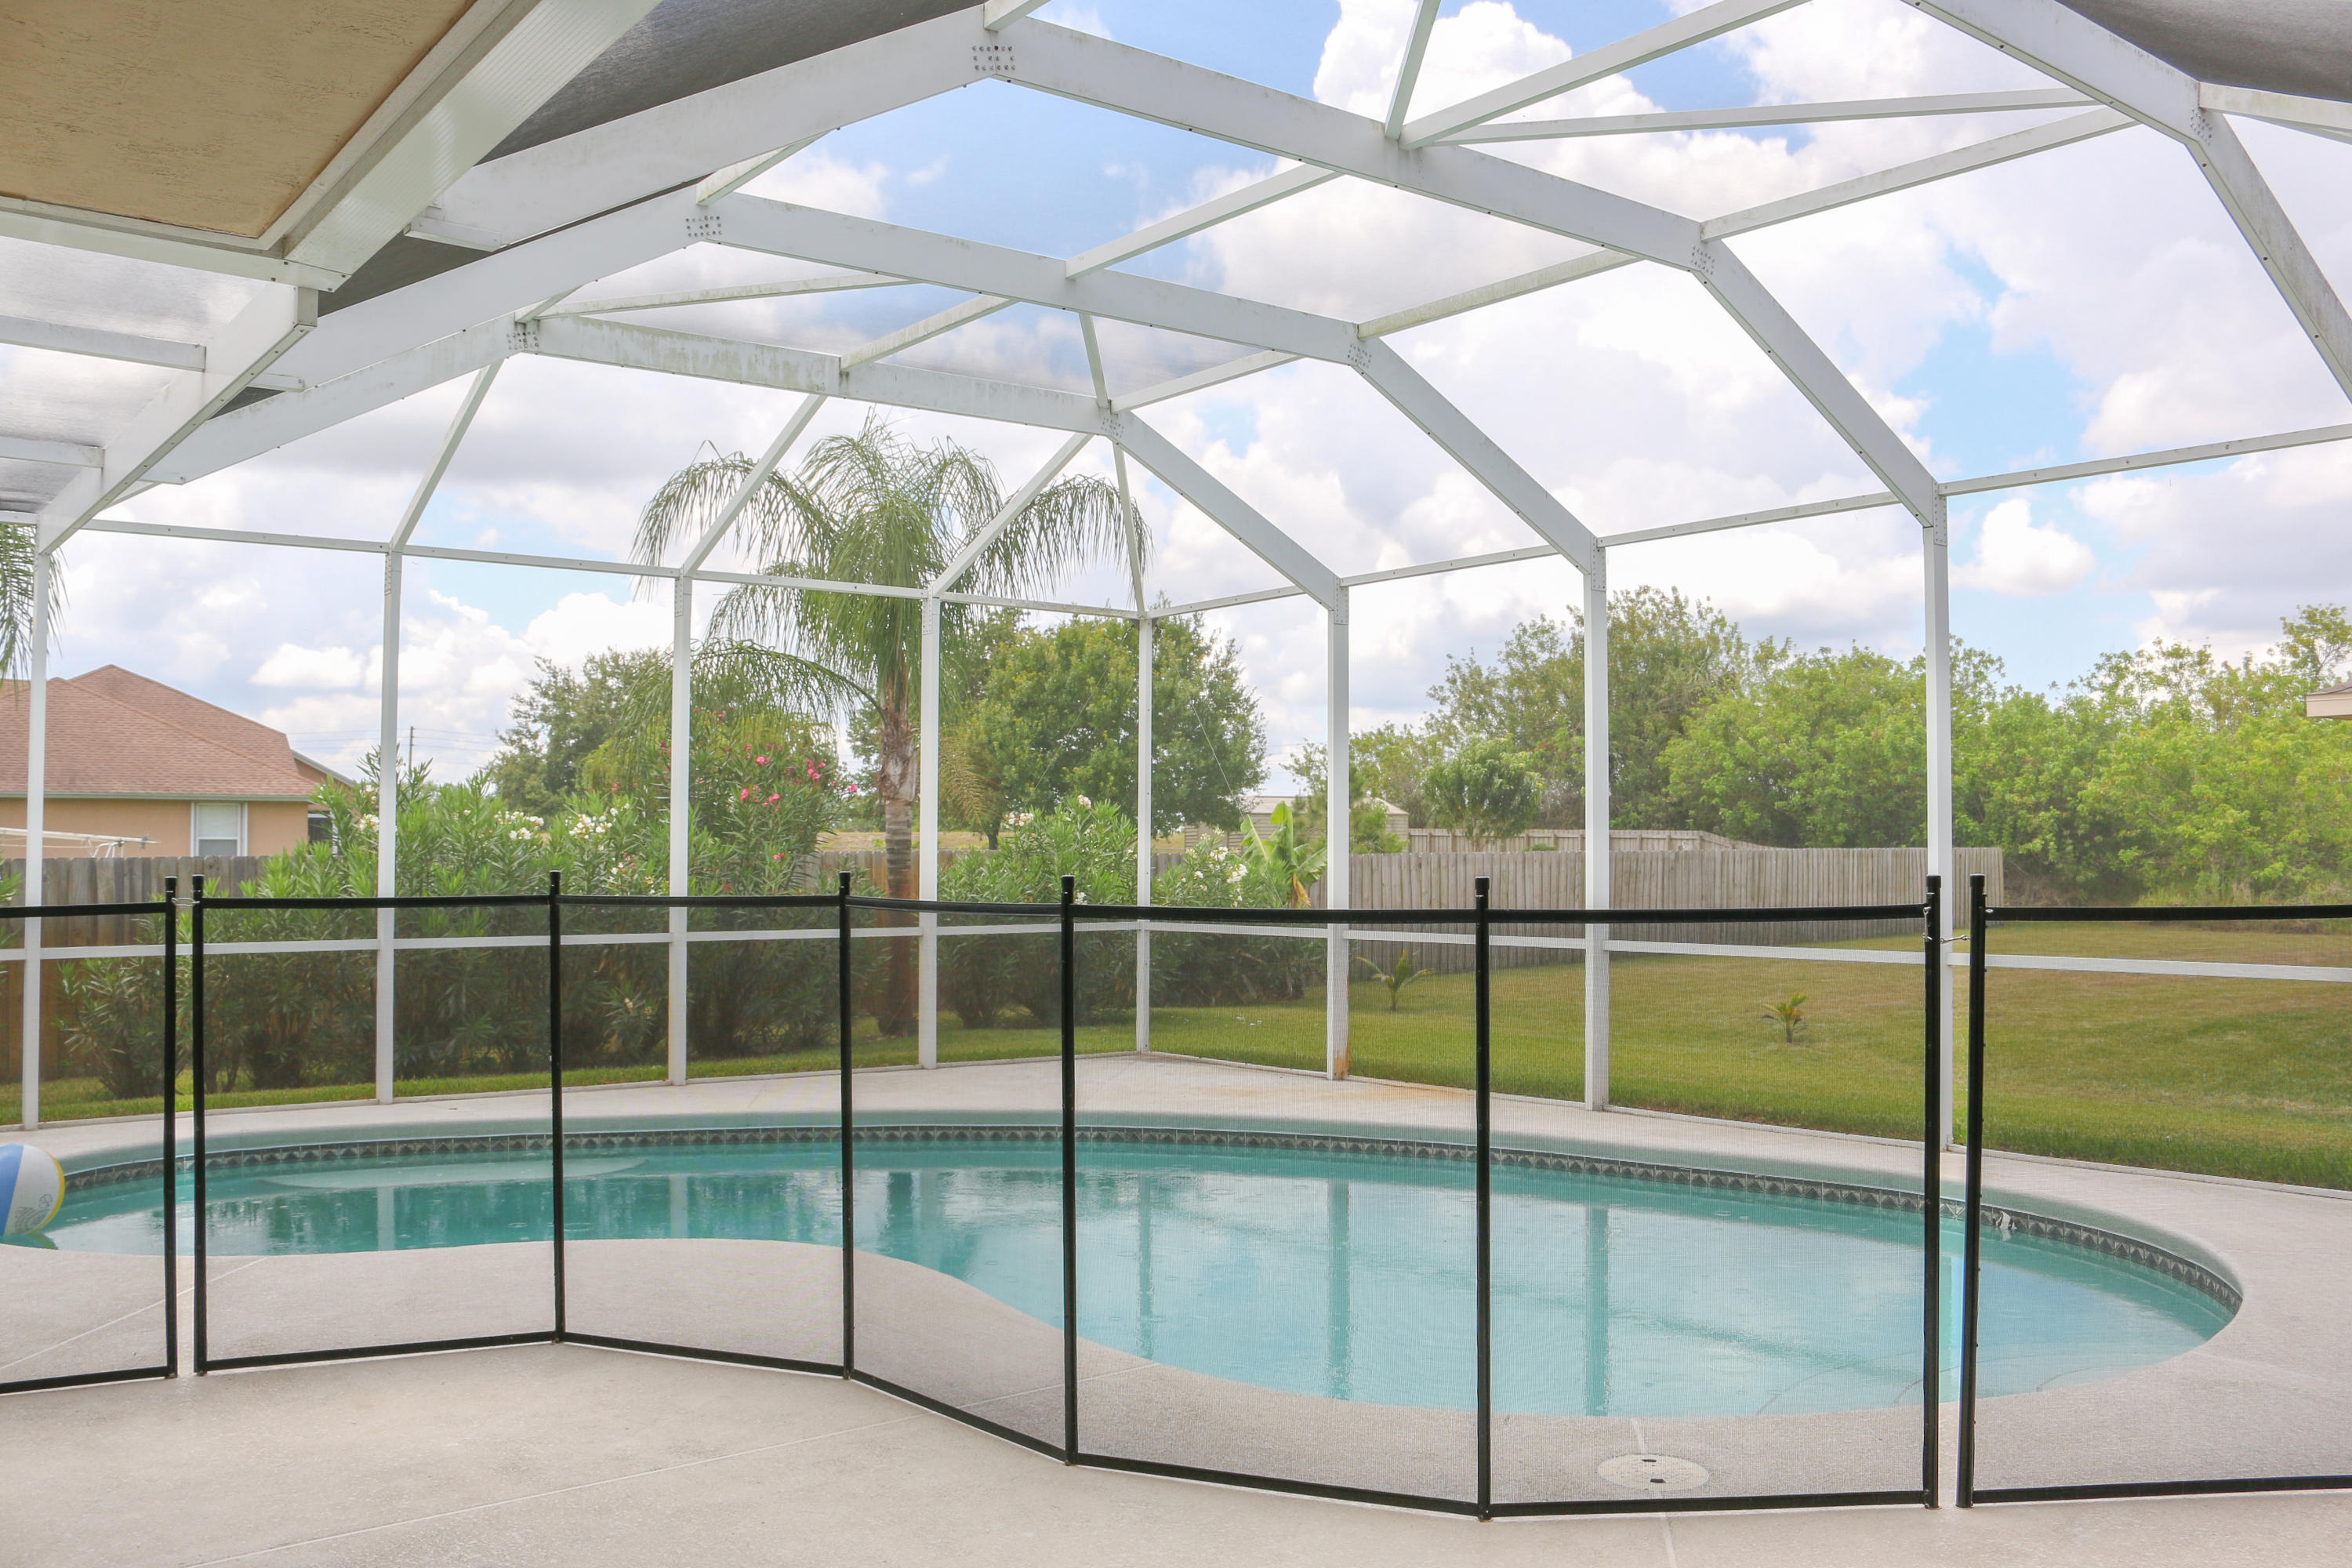 PORT ST LUCIE-SECTION 34- BLK 2379 LOT 29 (MAP 44/33S) (OR 4015-470)